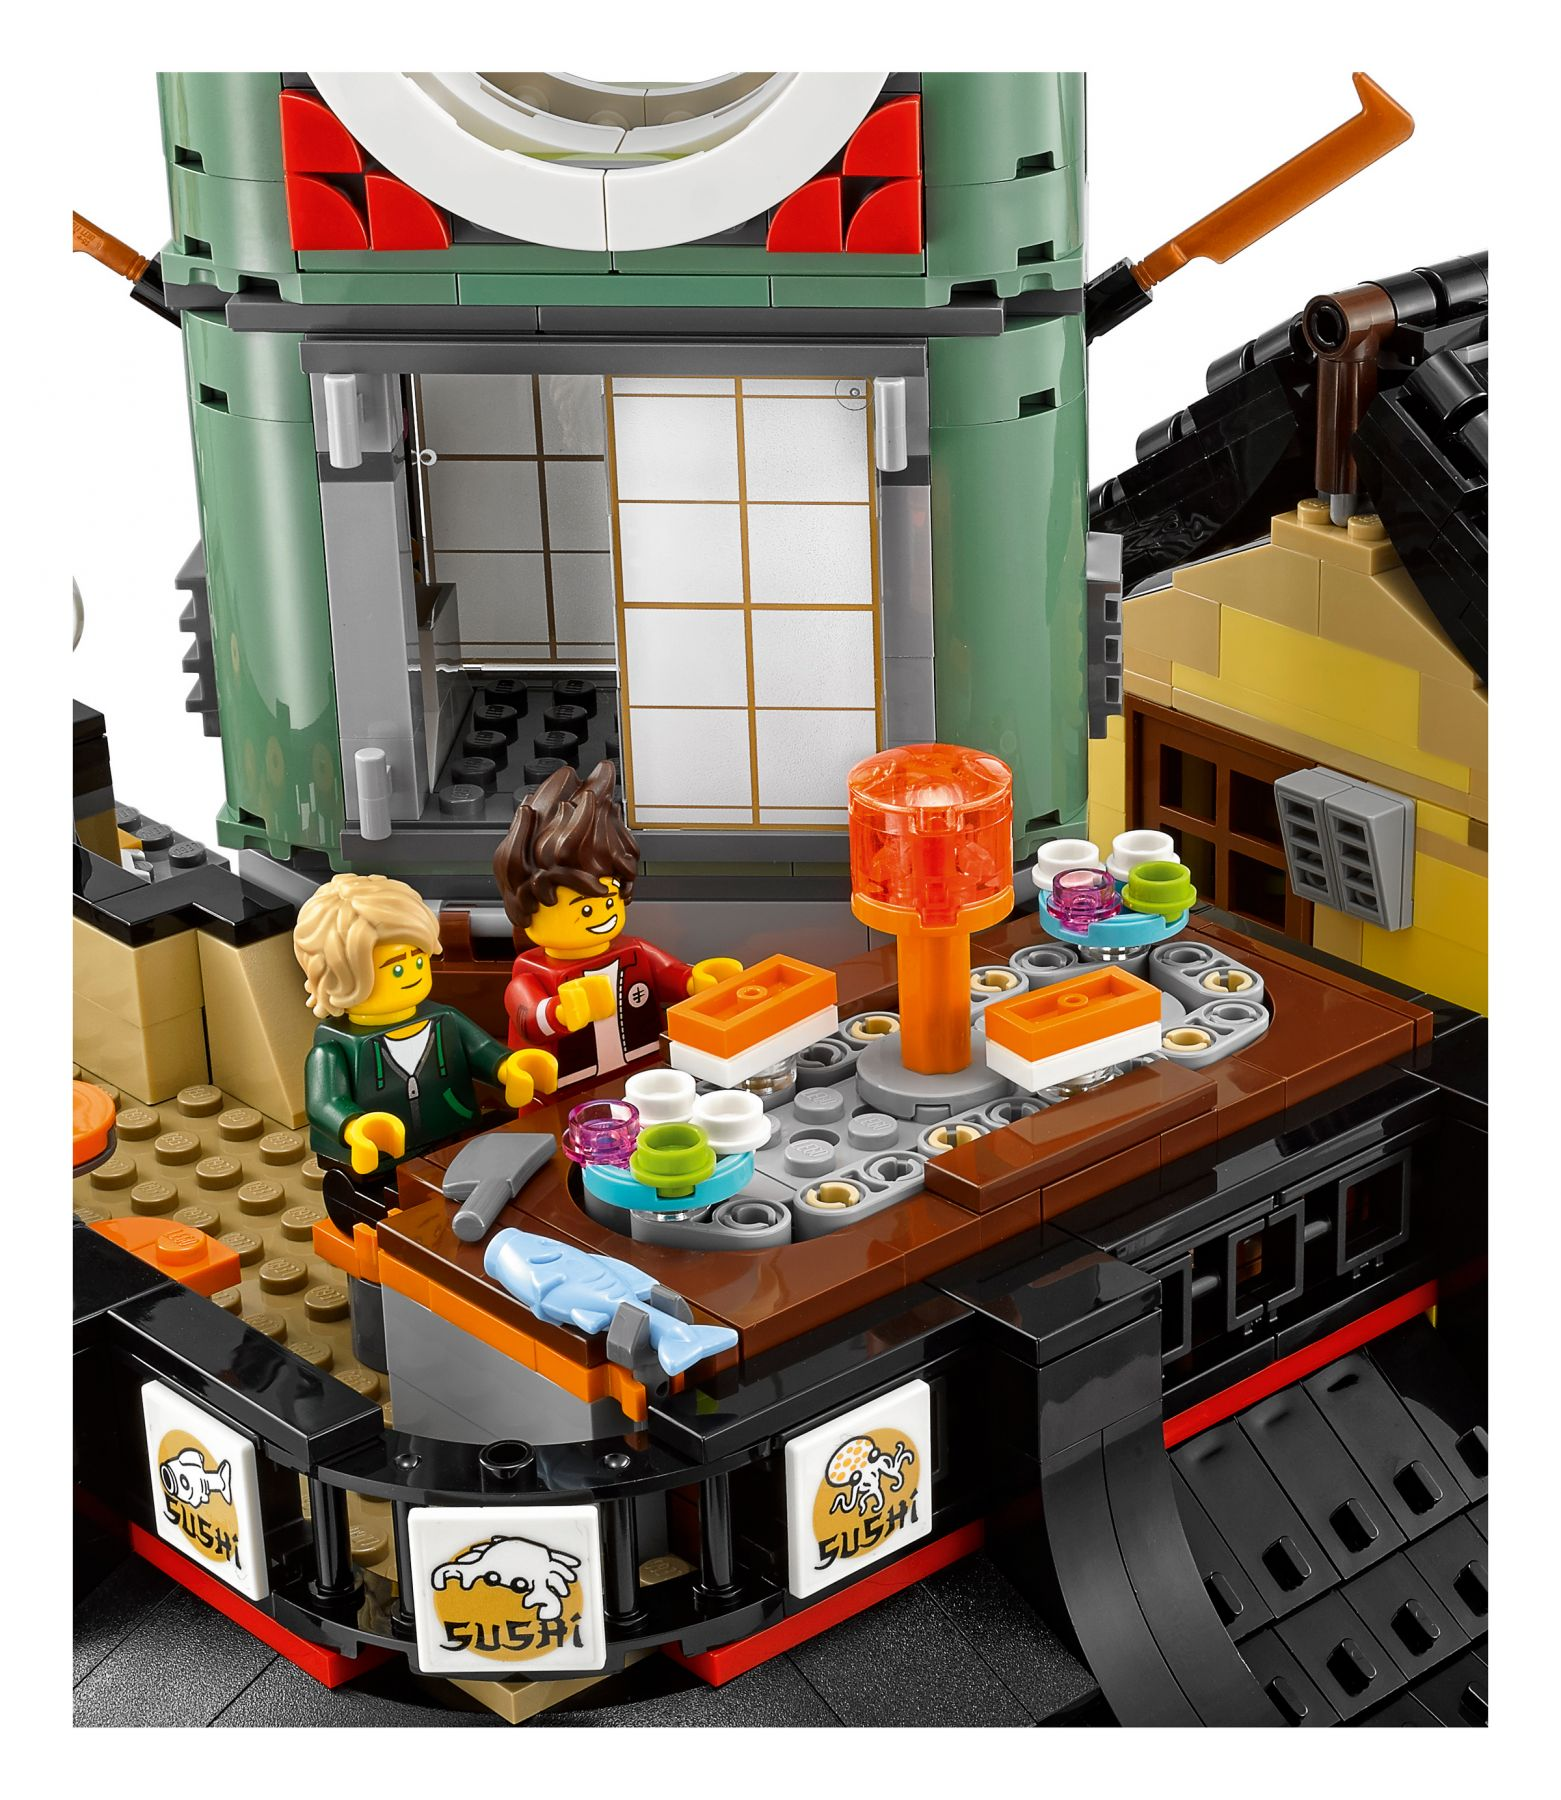 LEGO The LEGO Ninjago Movie 70620 Ninjago City LEGO_70620_alt6.jpg